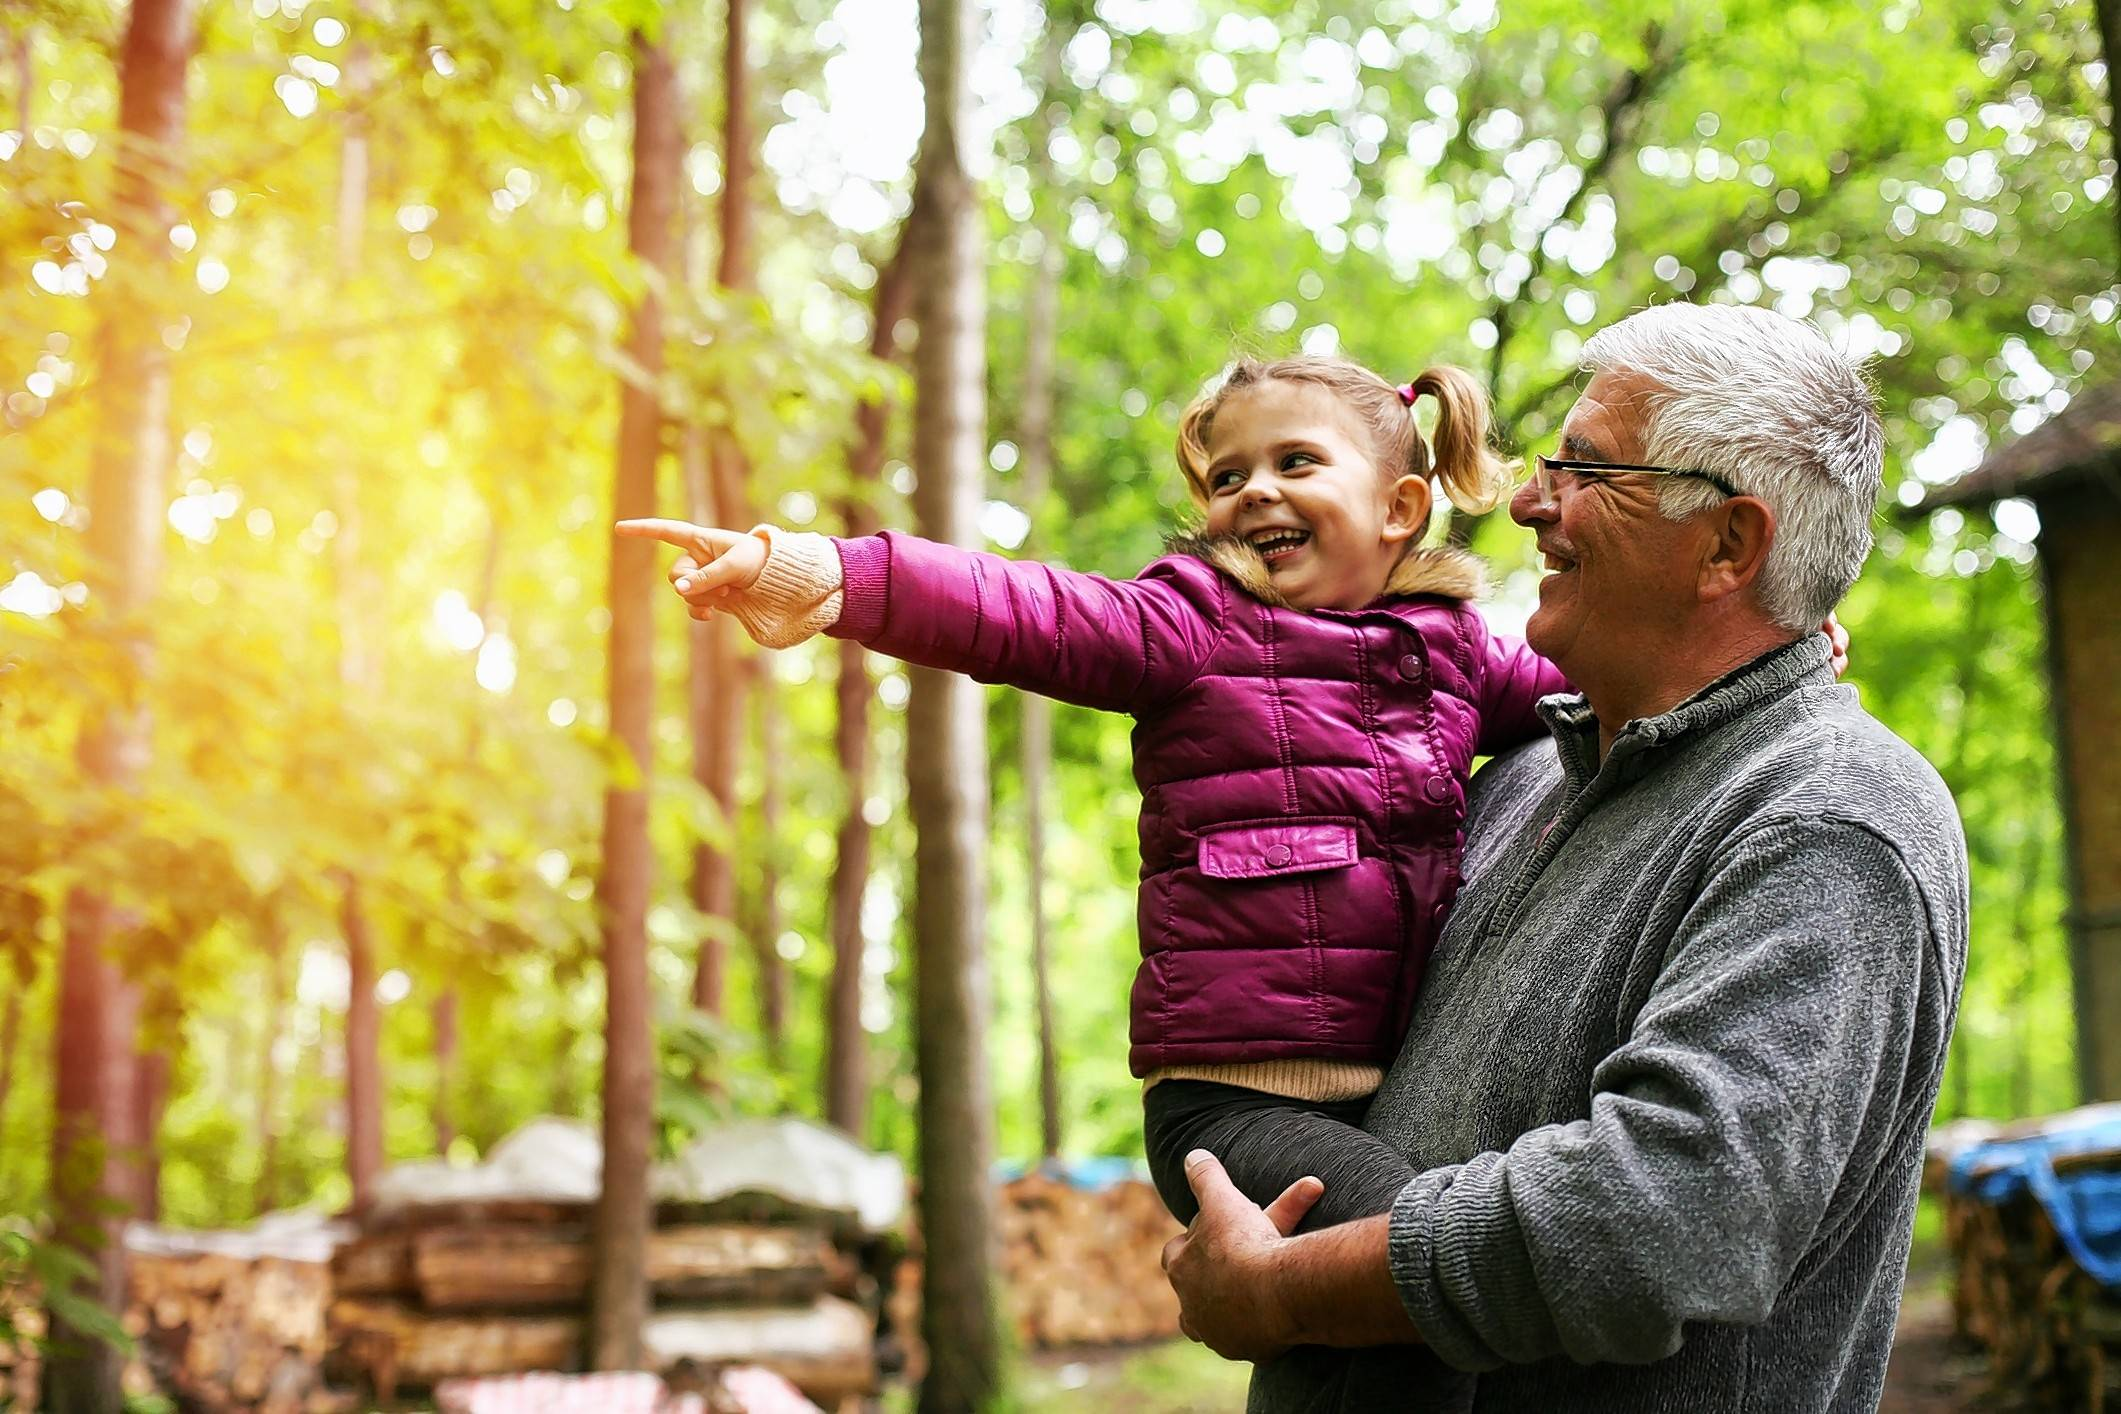 Some older adults discover a sense of purpose from helping take care of grandchildren.